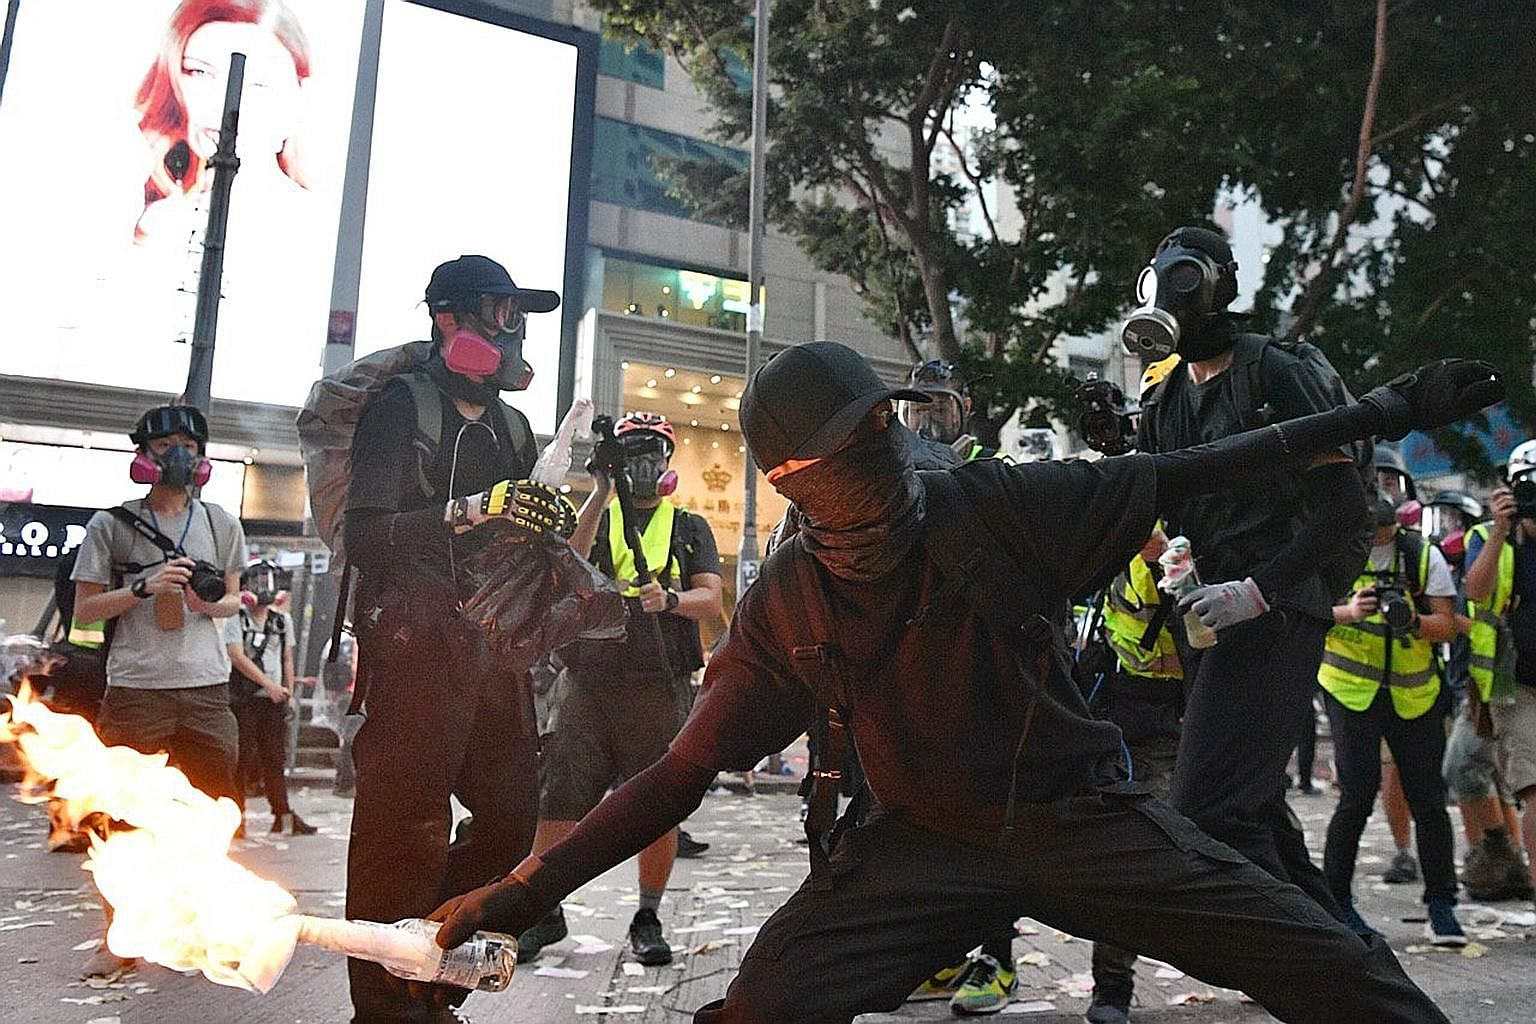 """Hong Kong protesters throwing petrol bombs at the police last Tuesday. The current cycle of protests is heir to the """"Occupy Movement"""" of 2014 when Hong Kong people rallied against Beijing's attempts to curtail democratic freedoms protected under the"""